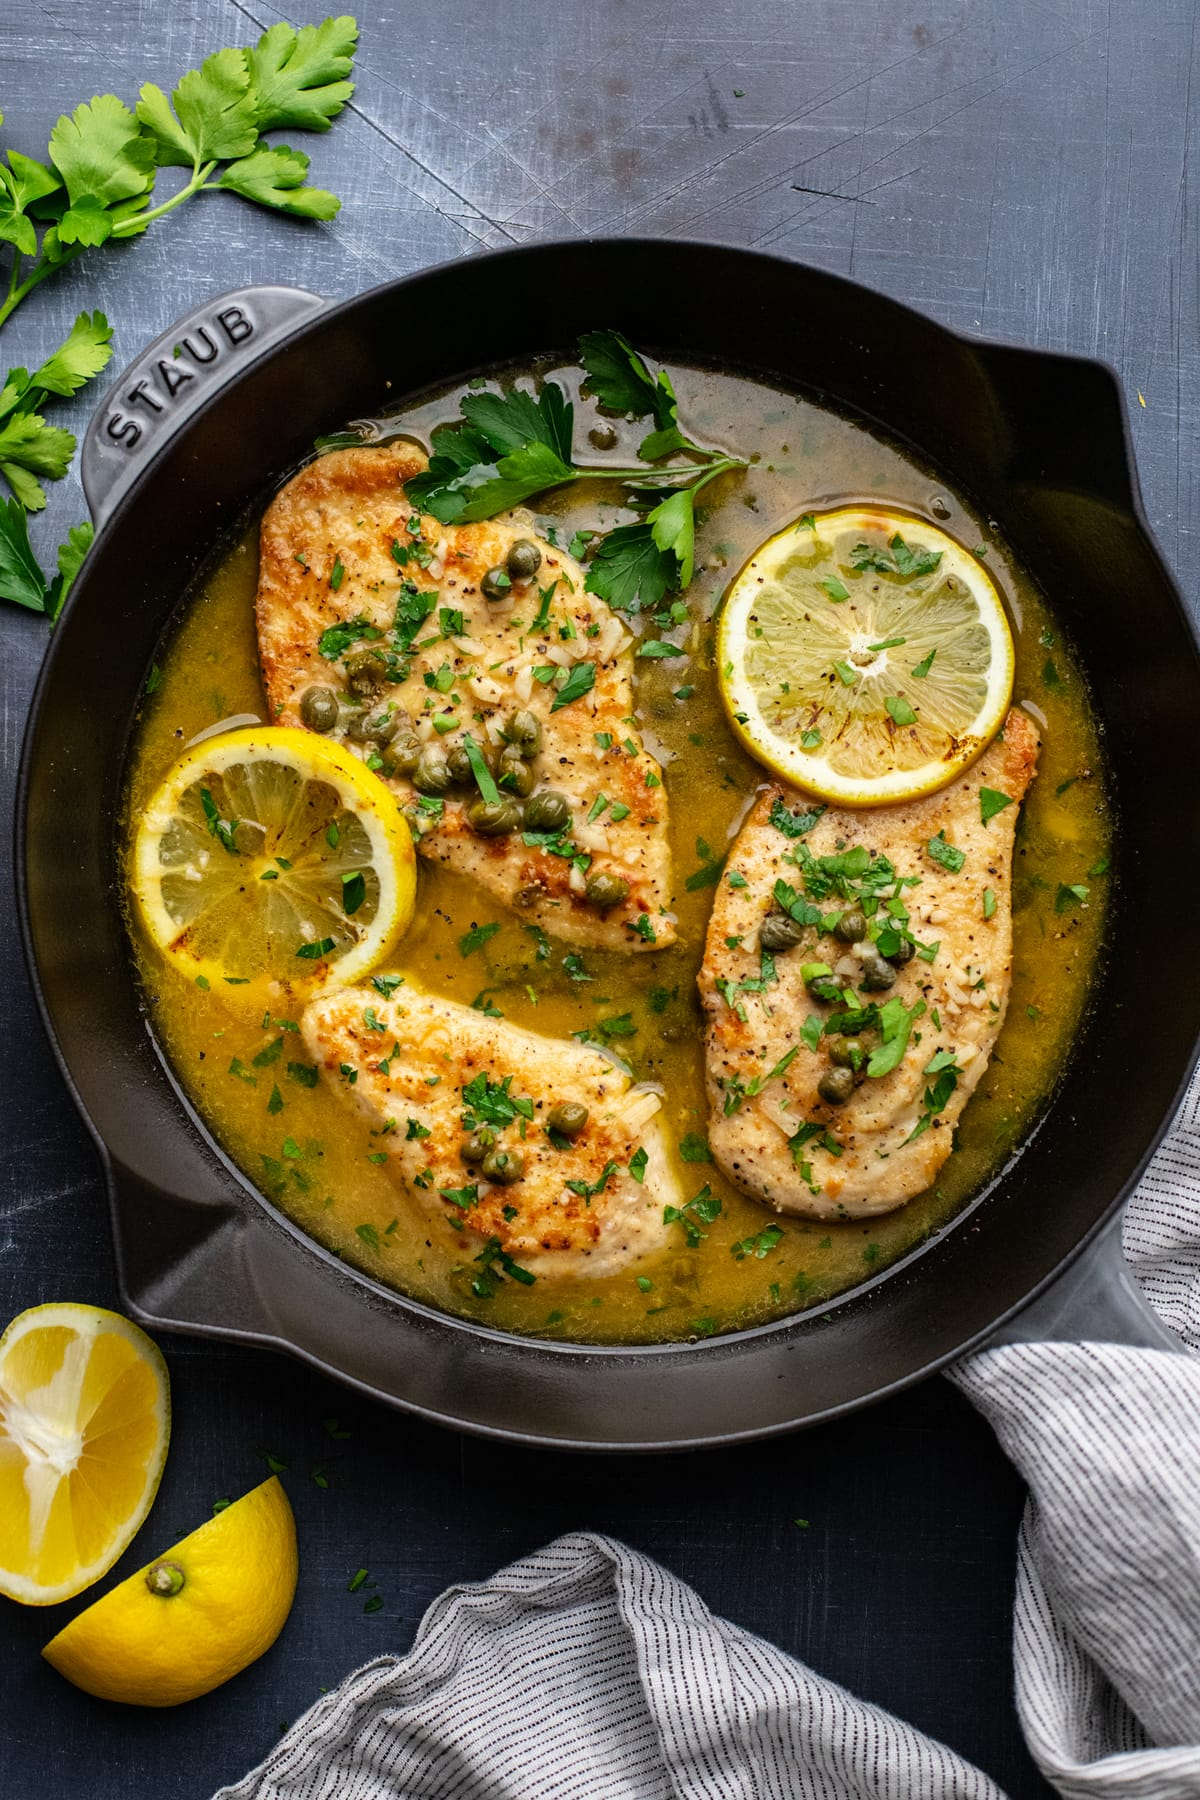 skillet pan with lemon chicken piccata in it on gray background with lemon slices and fresh parsley arranged around it.